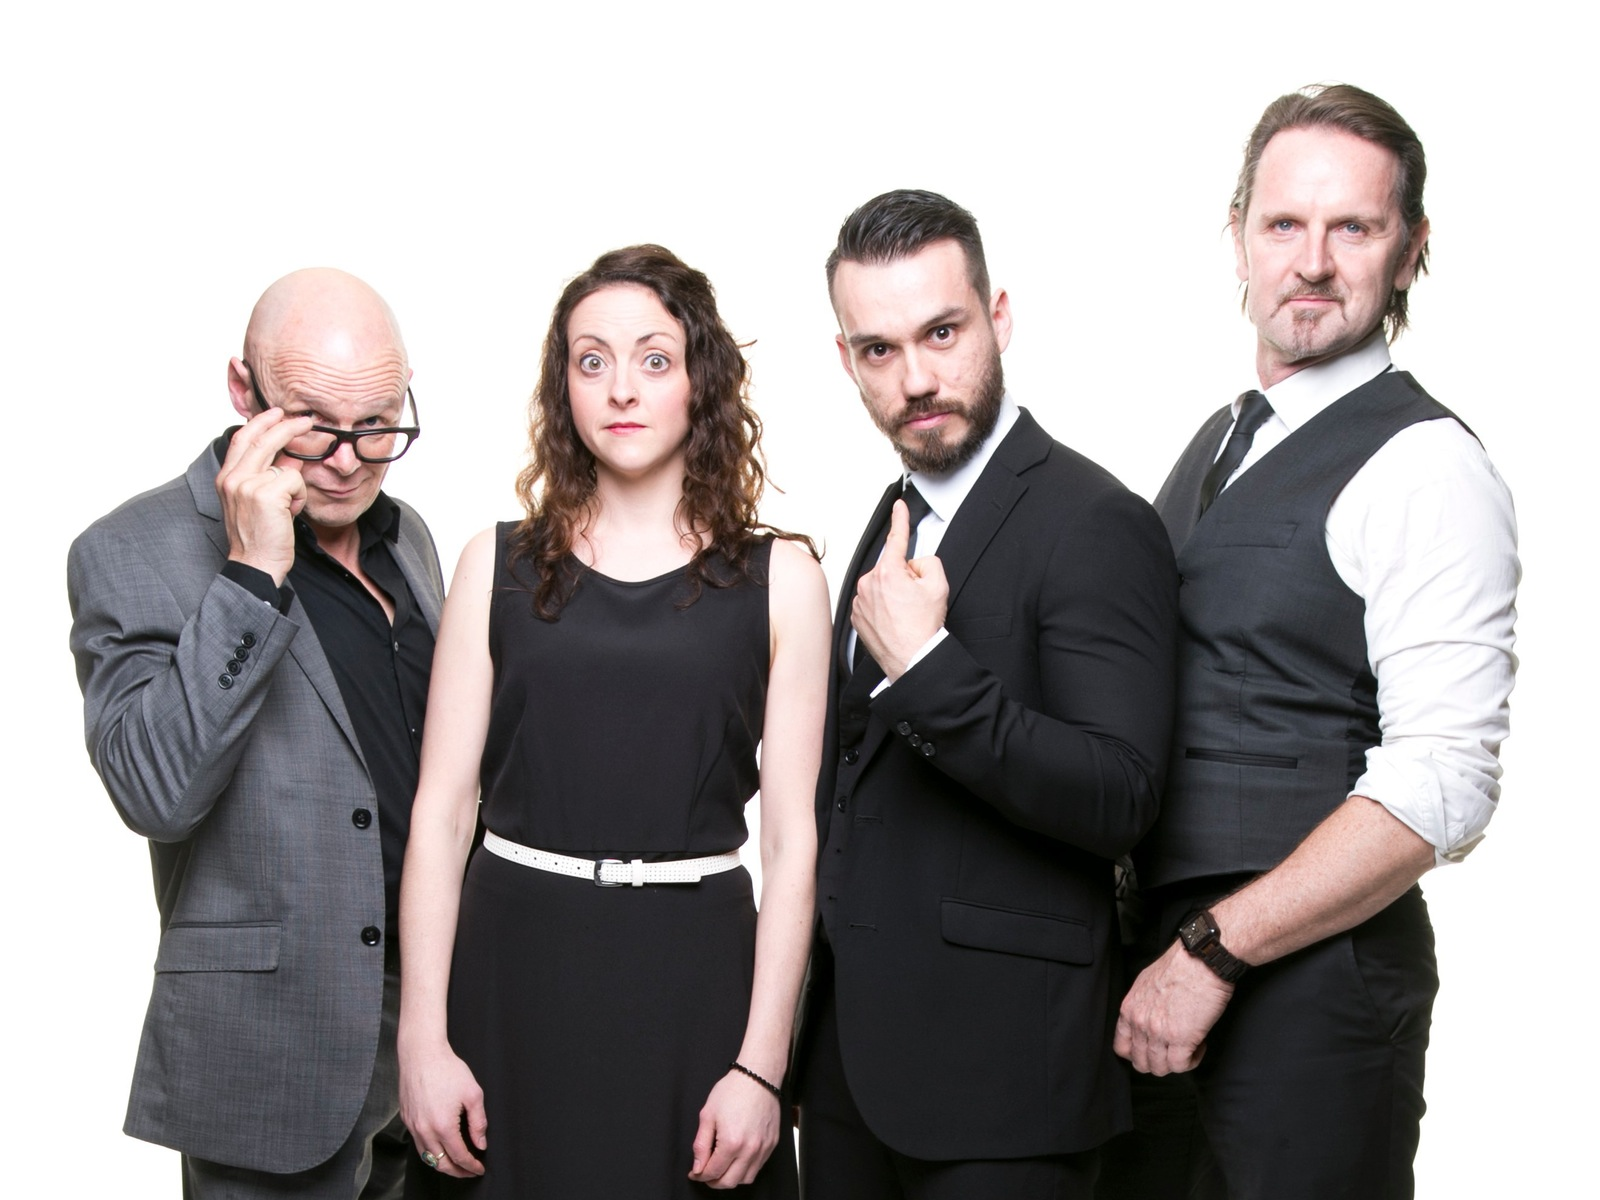 Impro Melbourne performers